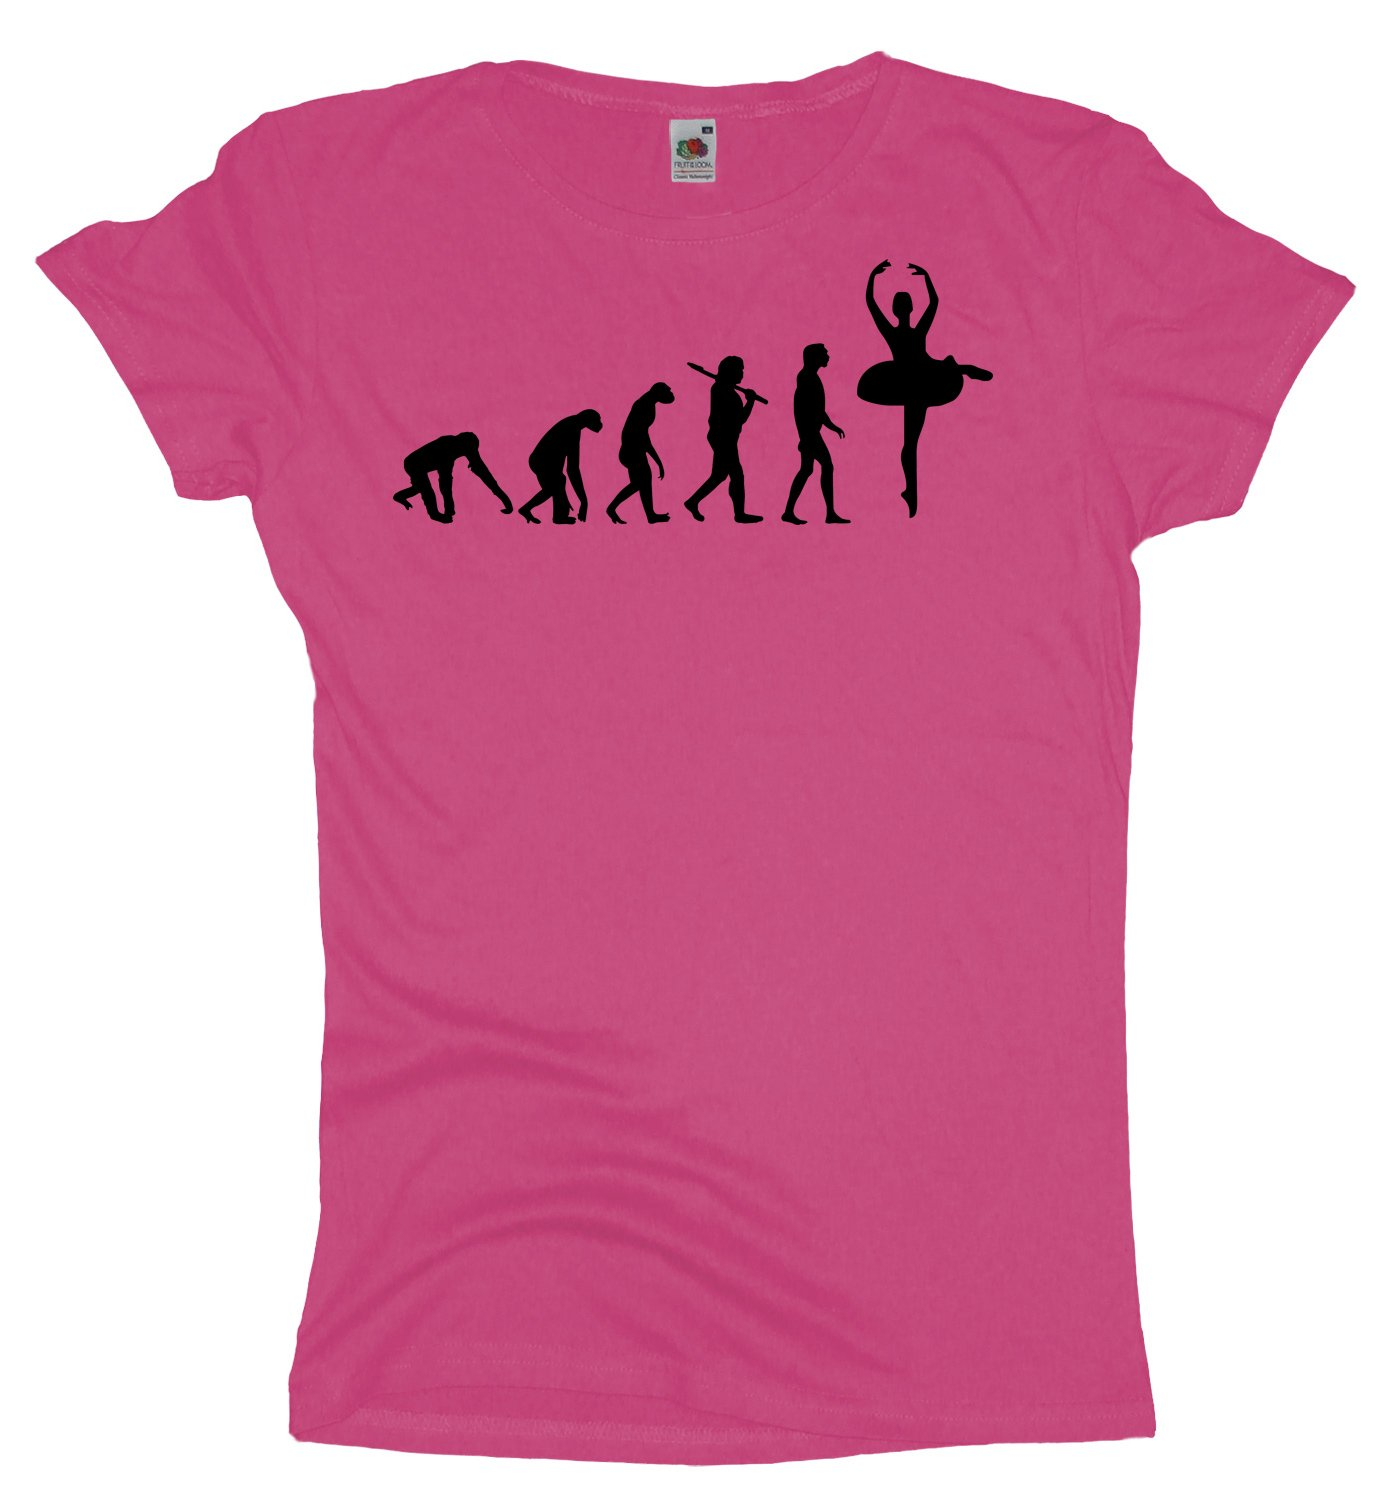 Ma2ca - Evolution - Ballerina - Damen Girlie T-Shirt: Amazon.de: Bekleidung